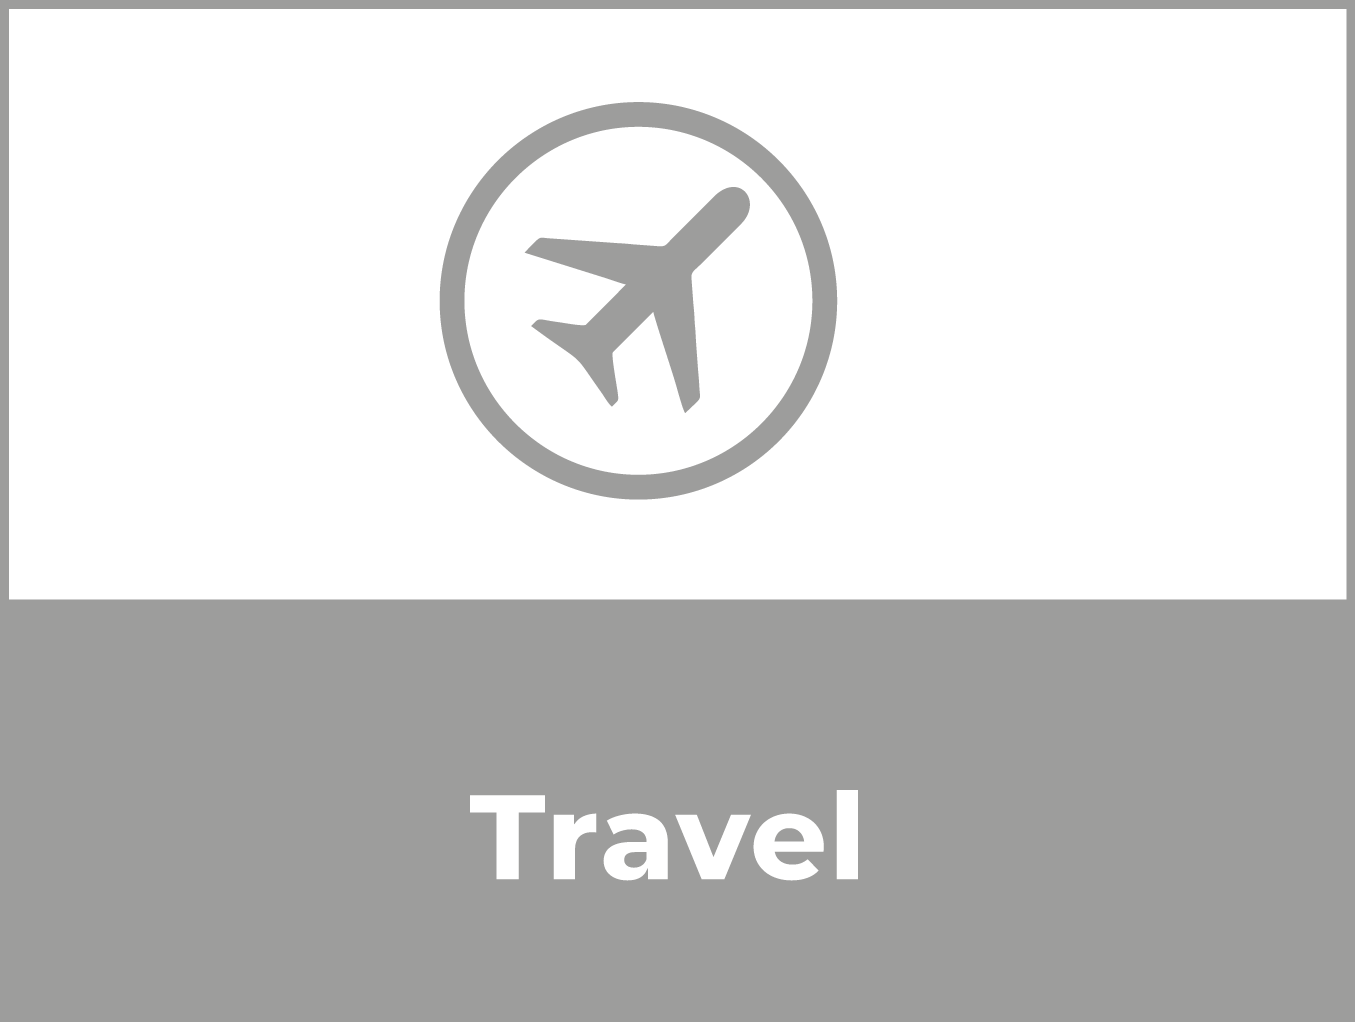 Travel Hover